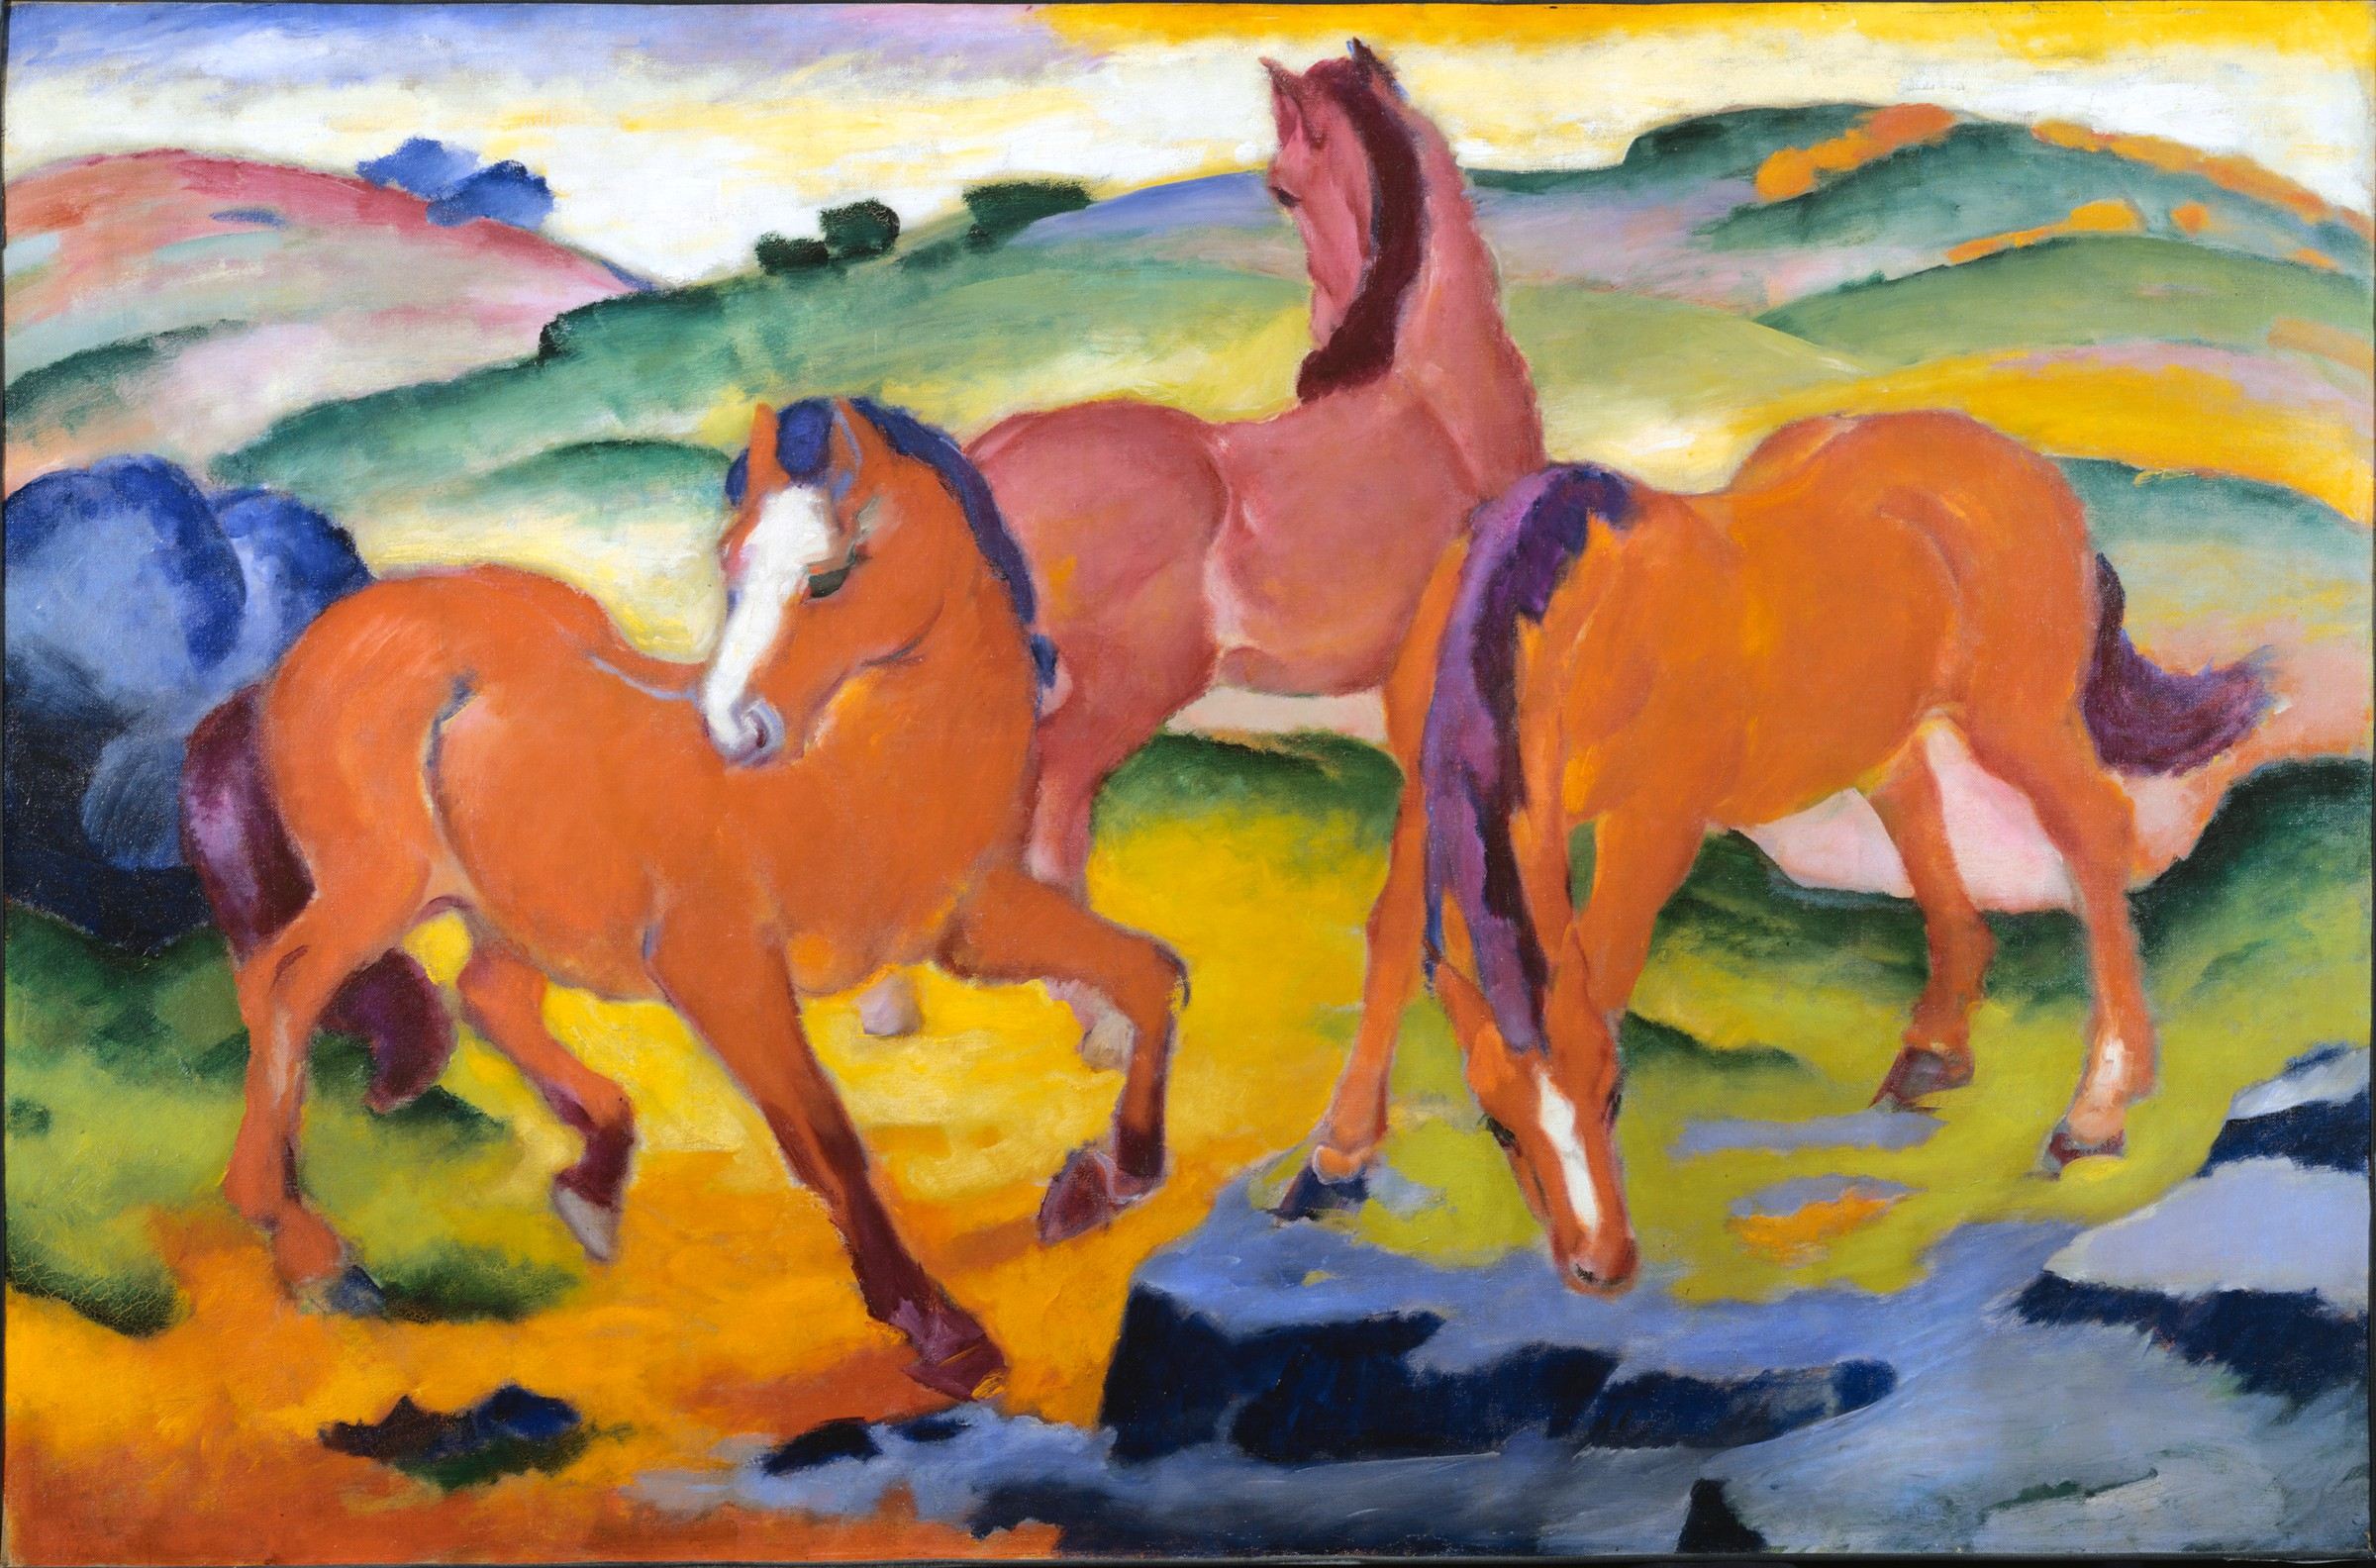 Franz Marc, Grazing Horses IV (The Red Horses), 1911, oil on canvas, 121 x 183 cm (Harvard Art Museums)